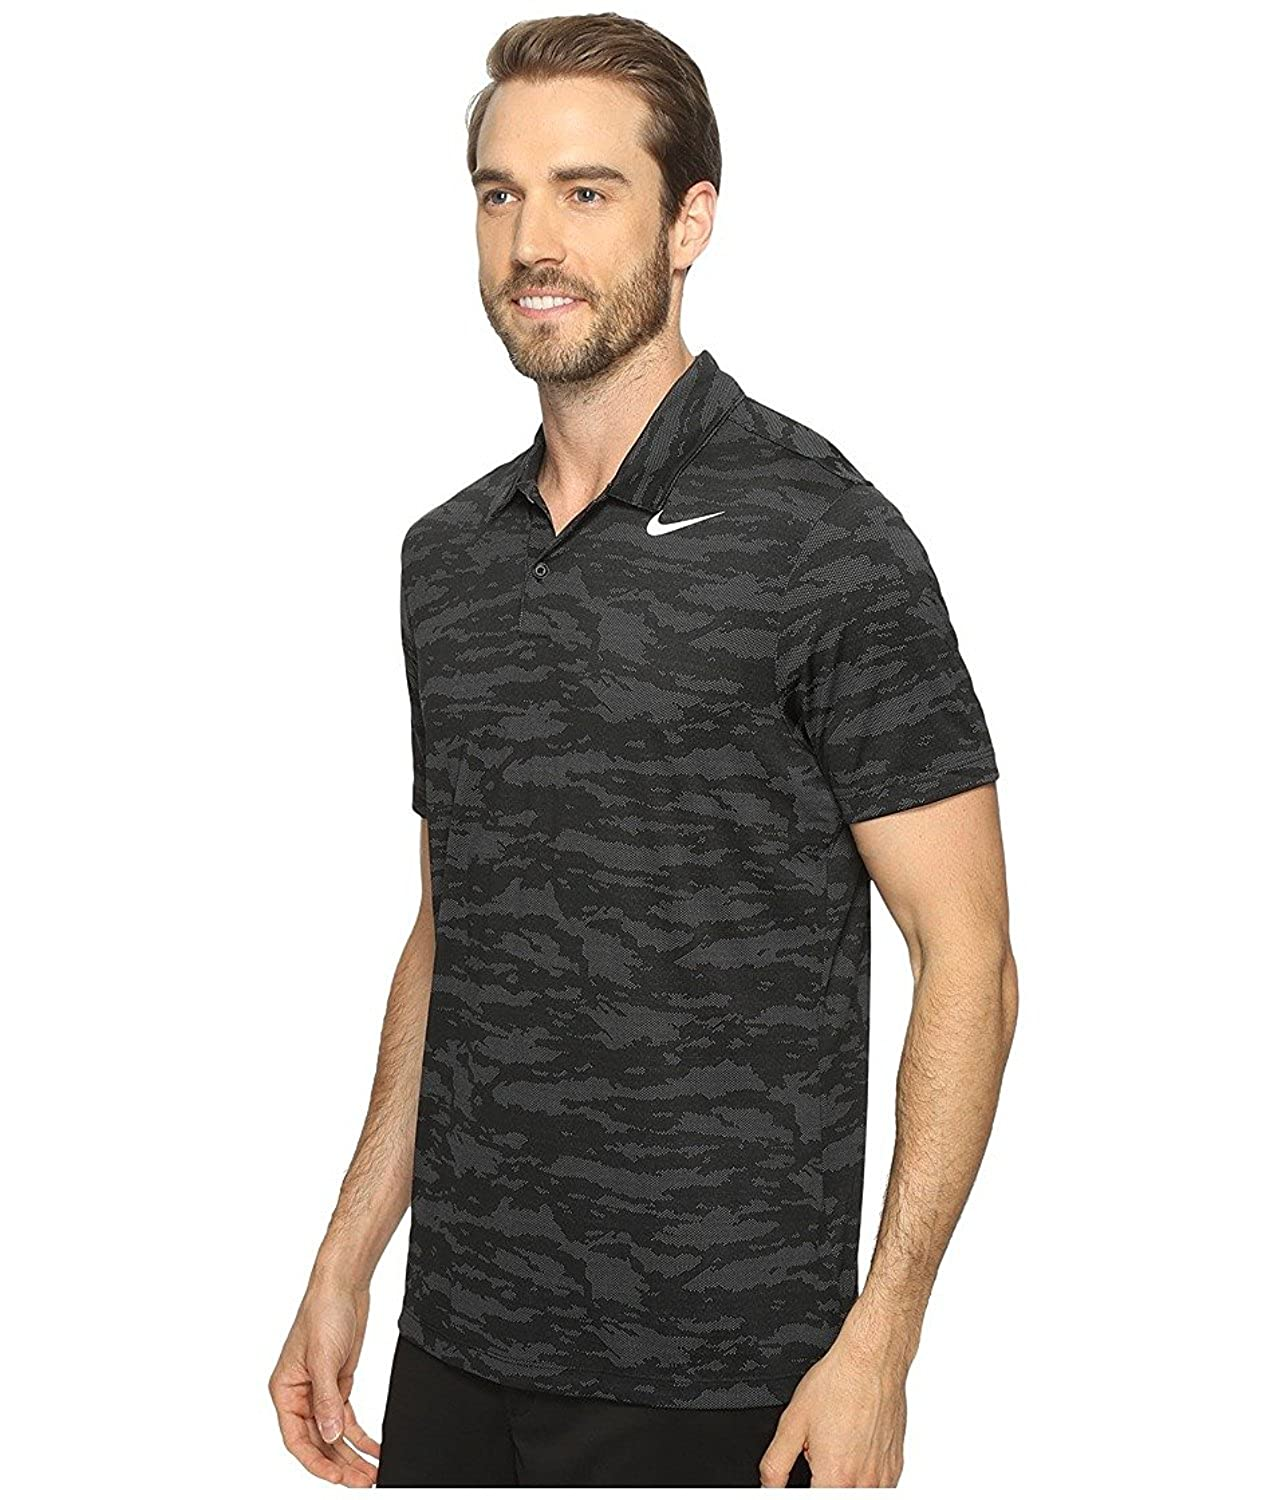 da53d235 Amazon.com: NIKE Golf Men's Icon Jacquard Polo: Sports & Outdoors